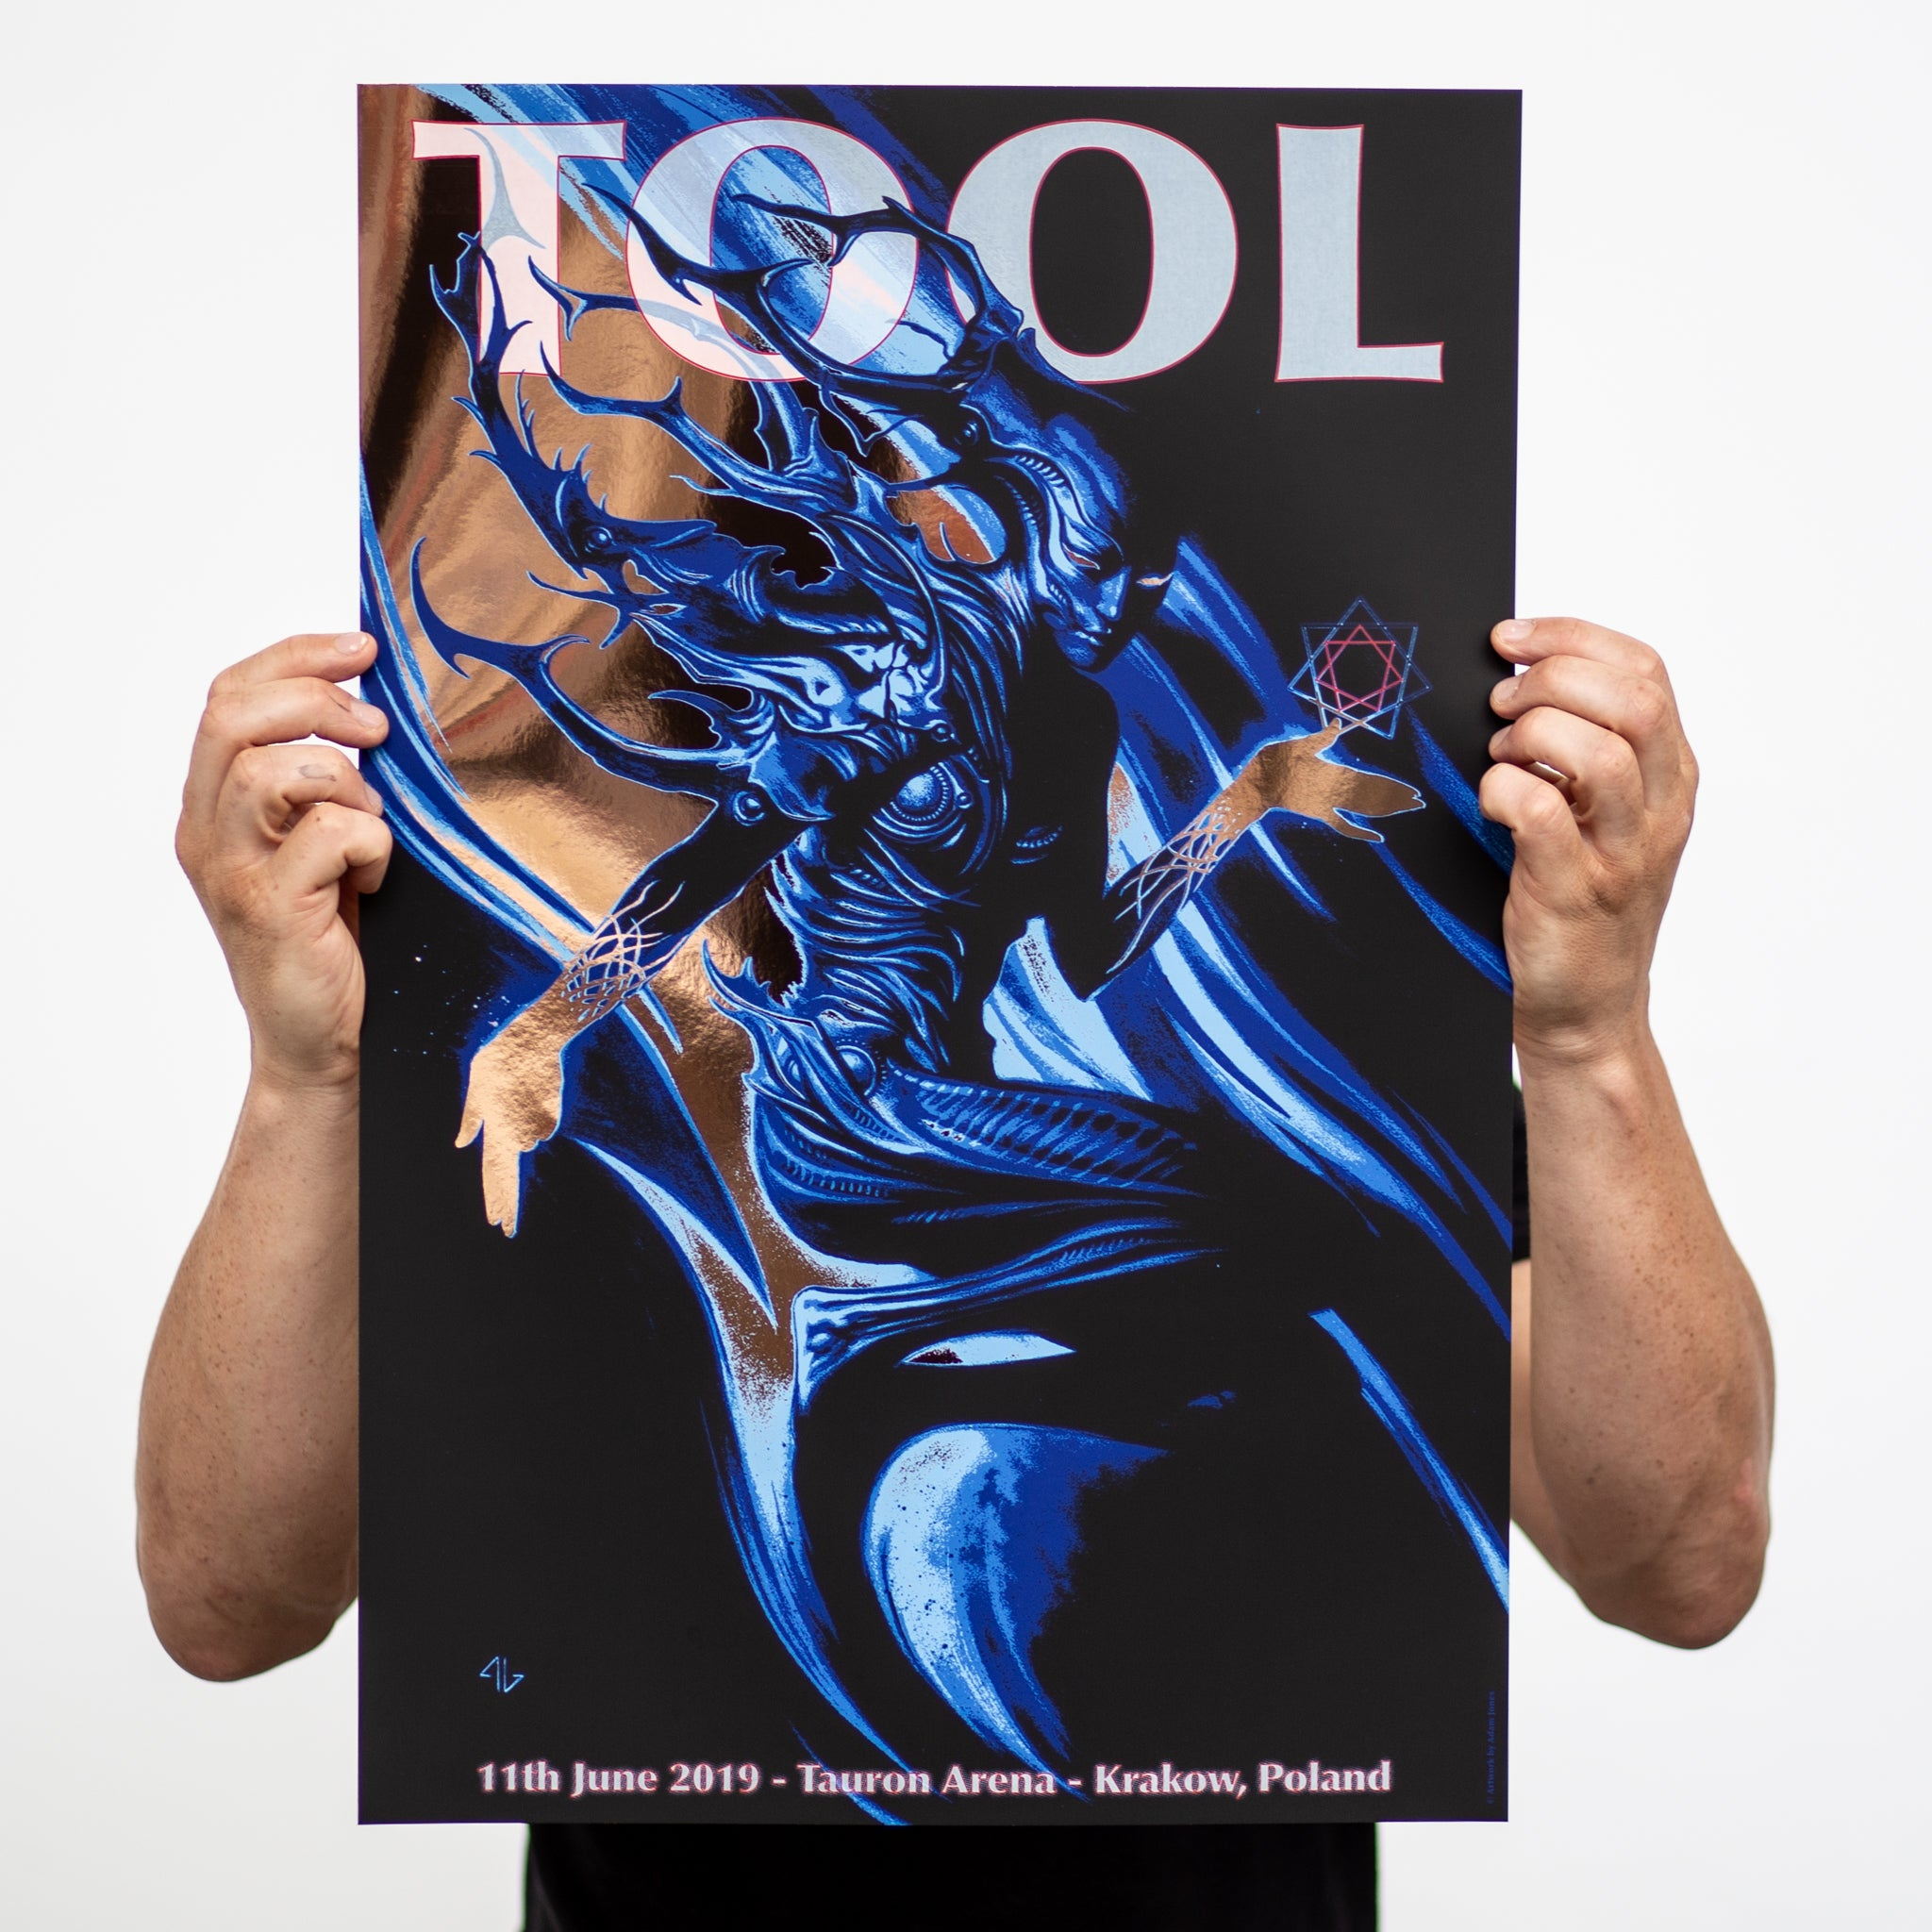 TOOL Screen printed tour poster.